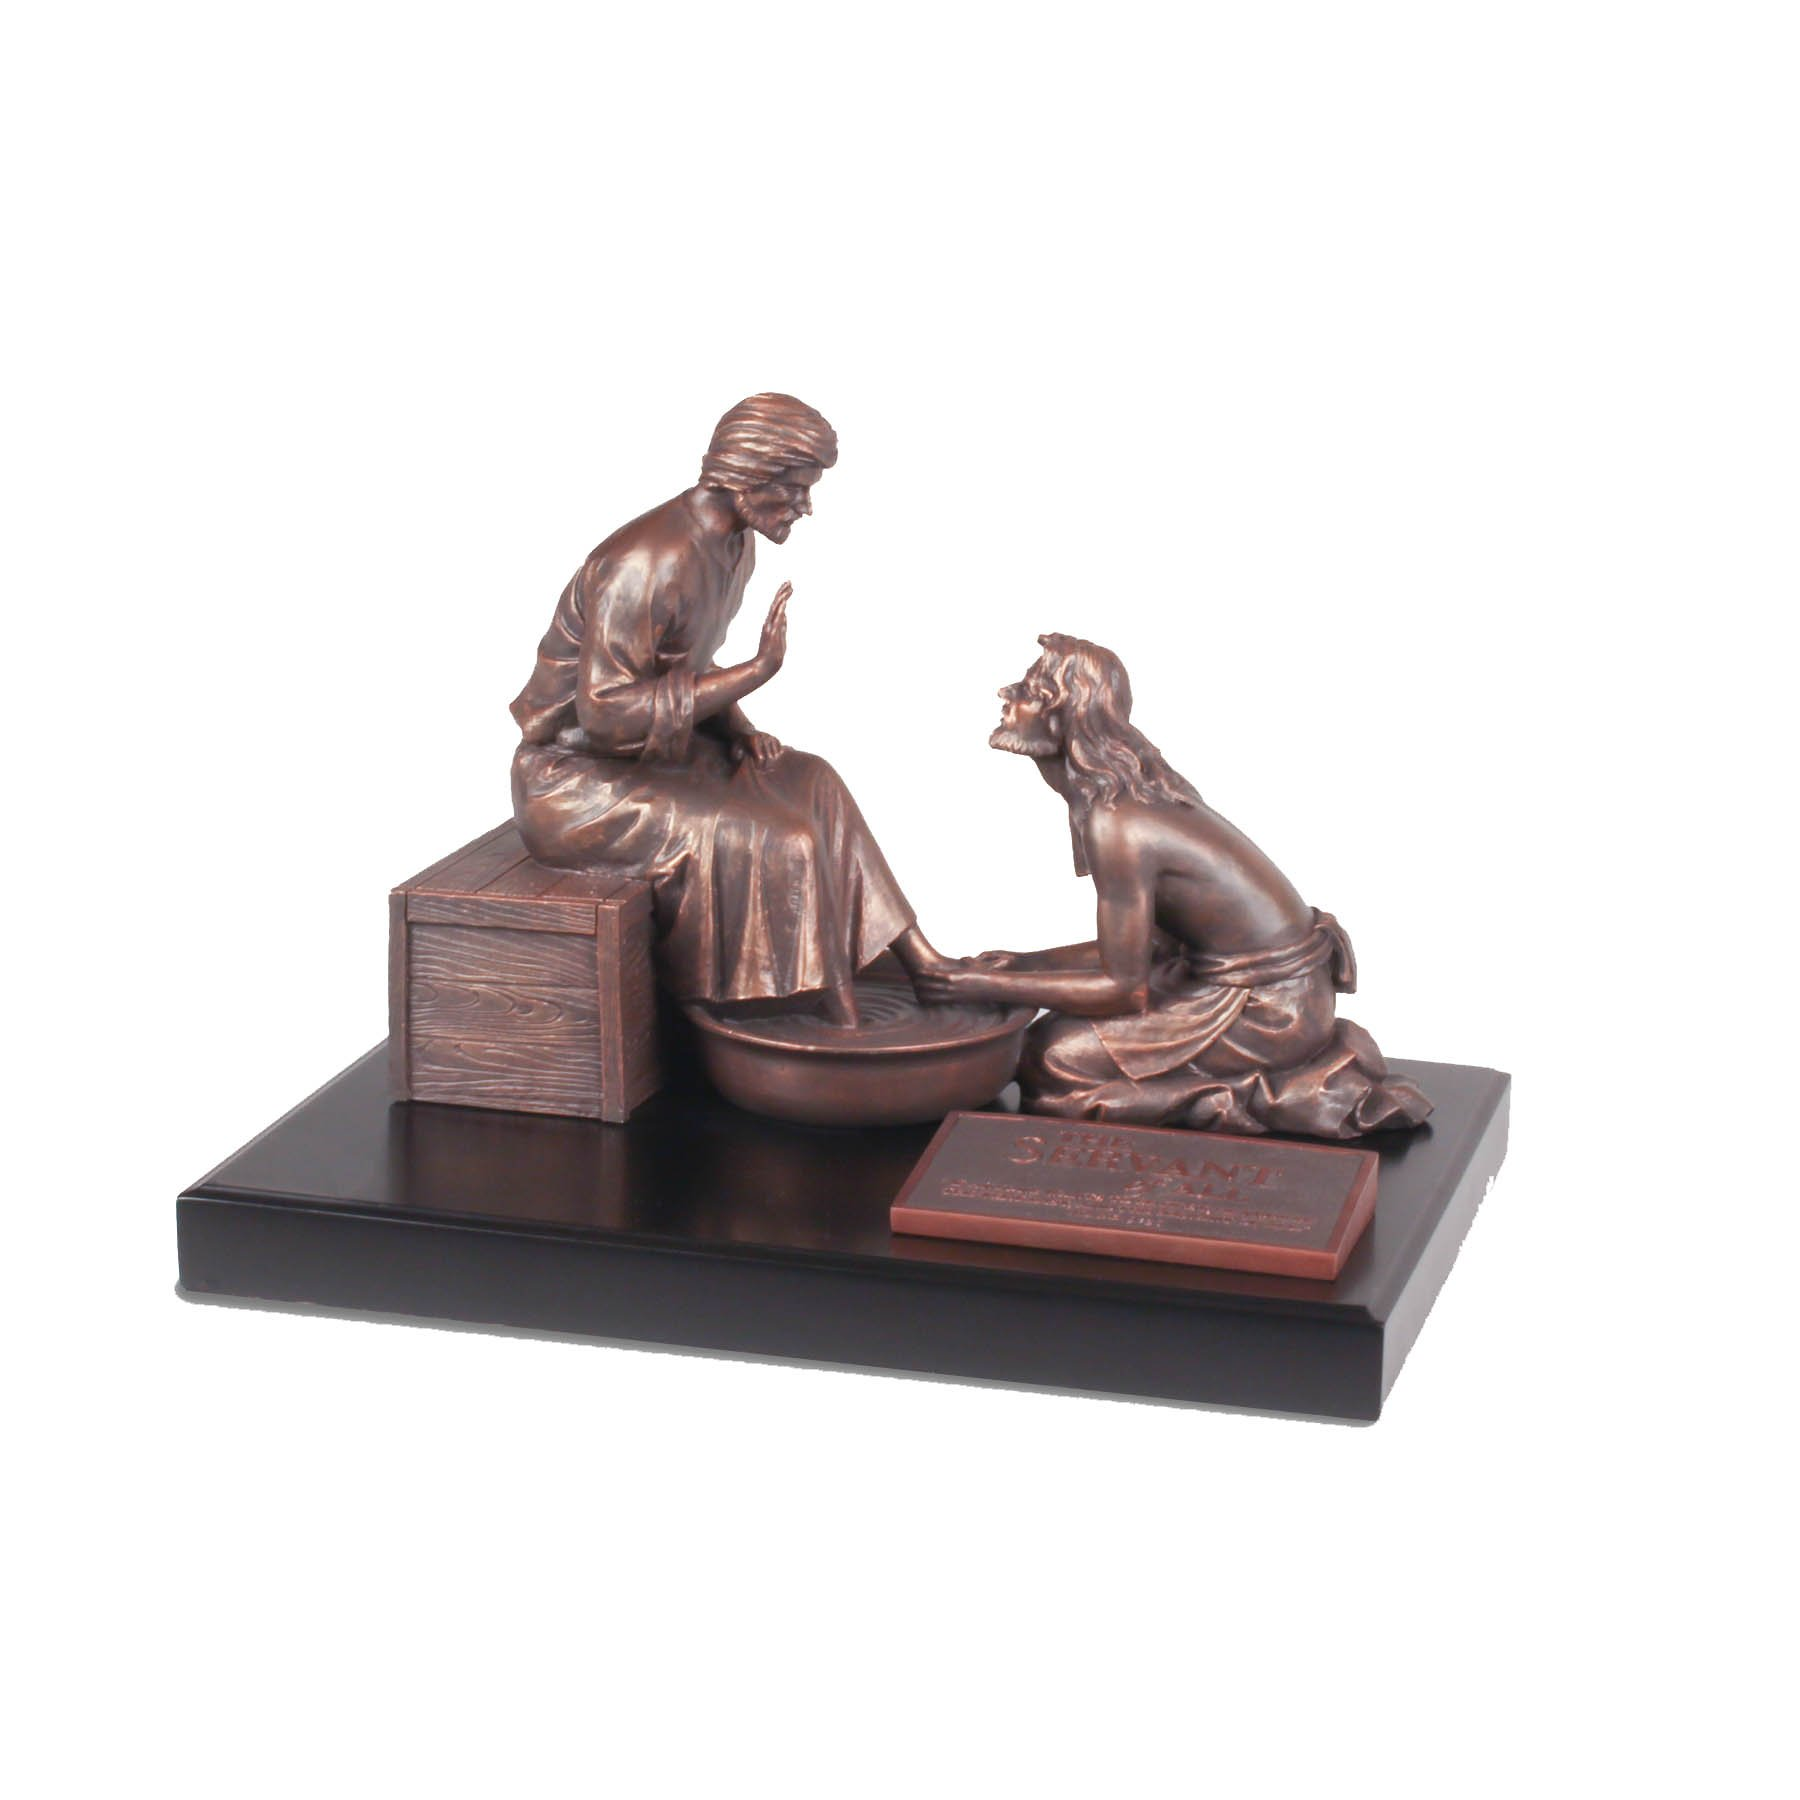 Lighthouse Christian Products Moments of Faith XL Humble Servant Sculpture, 14 x 10 1/2 x 11'' by Lighthouse Christian Products